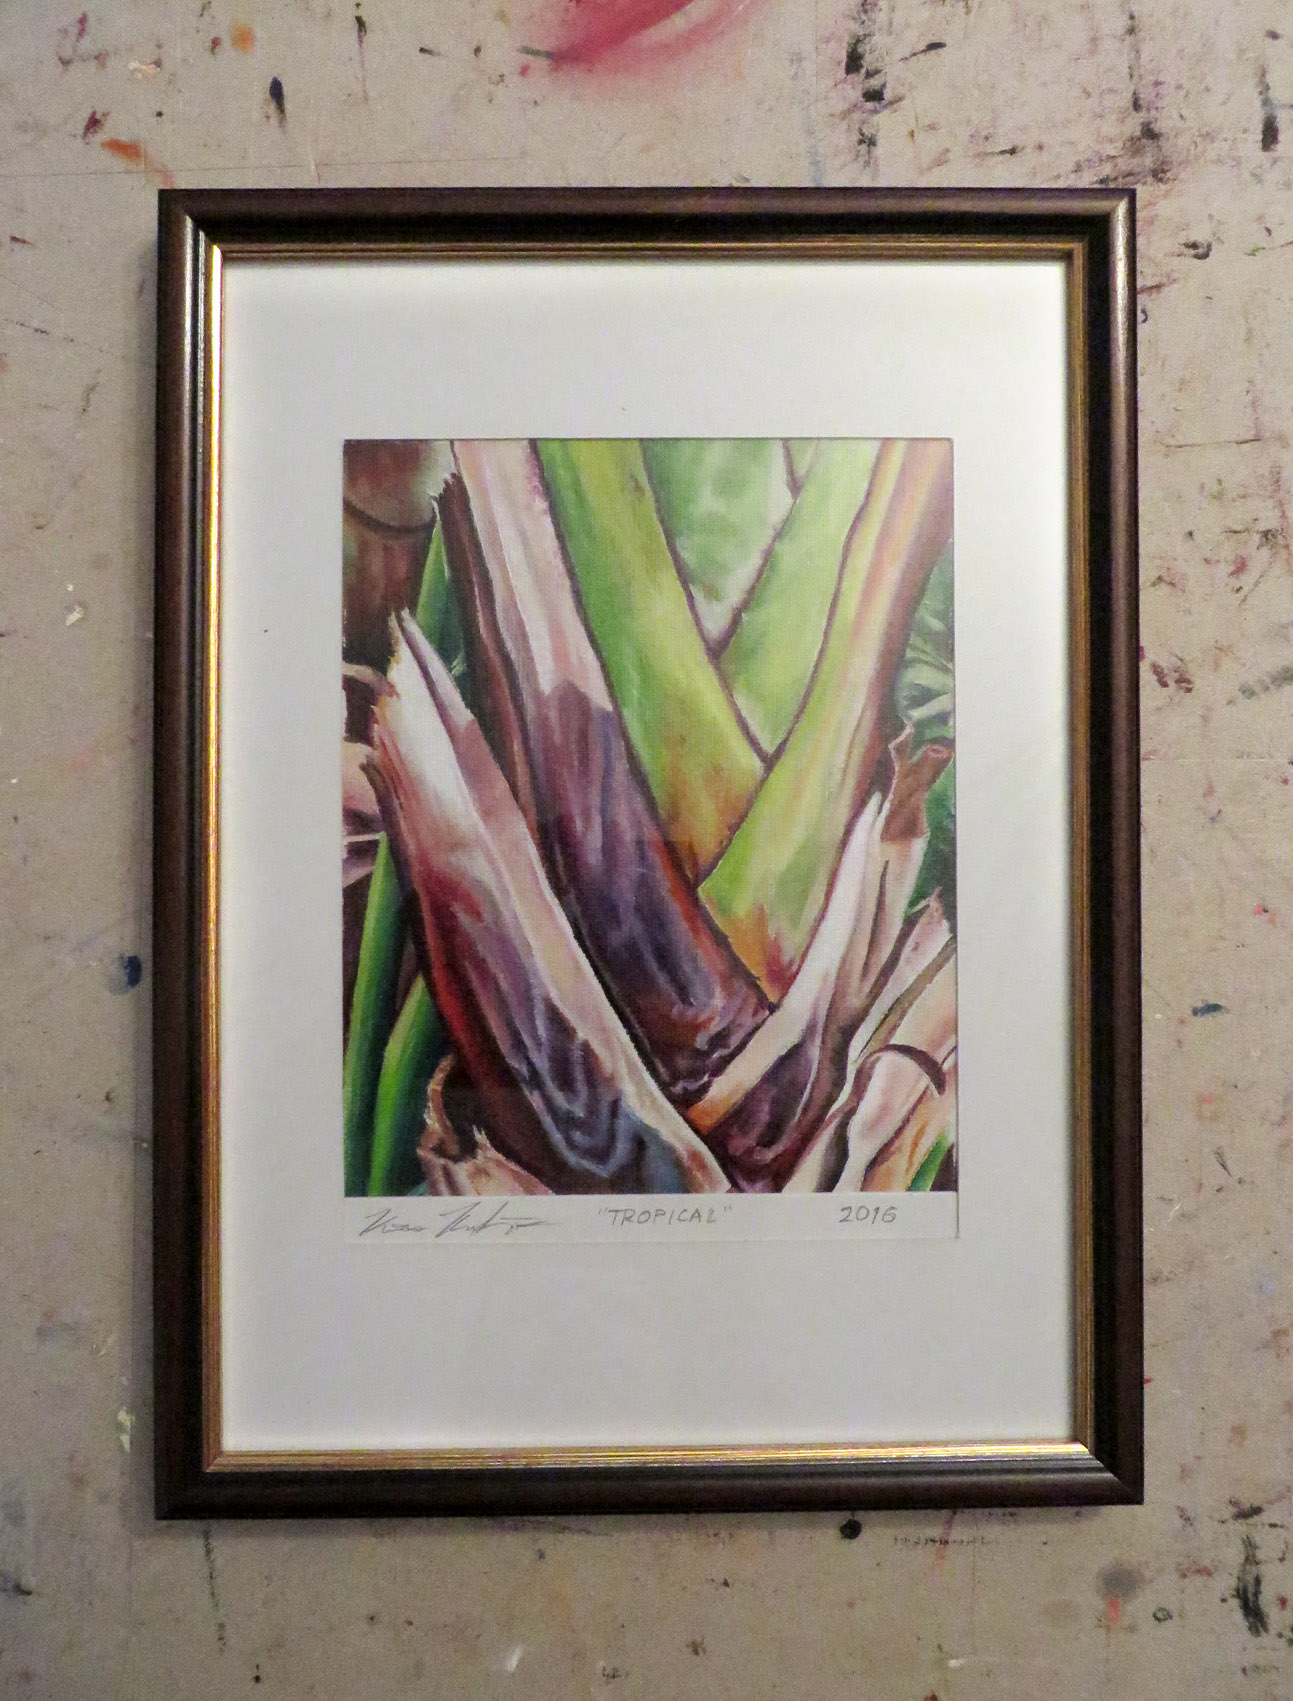 Tropical pic2 Framed